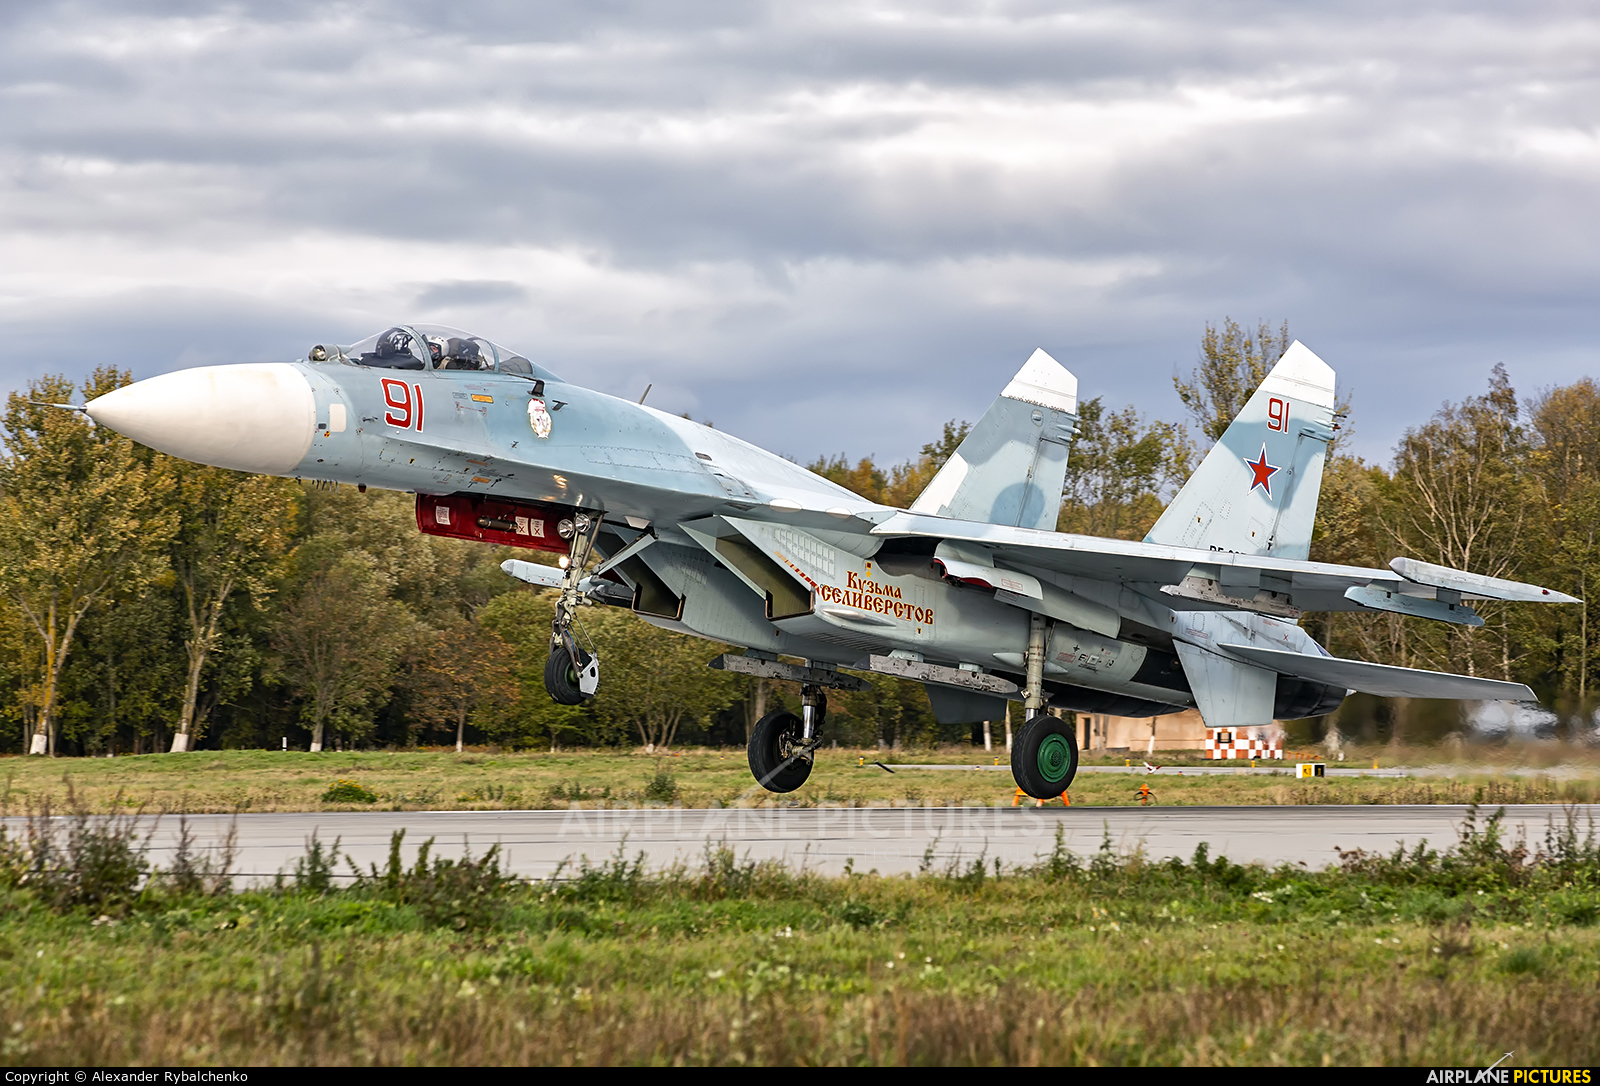 Russia - Navy RF-33747 aircraft at Undisclosed Location